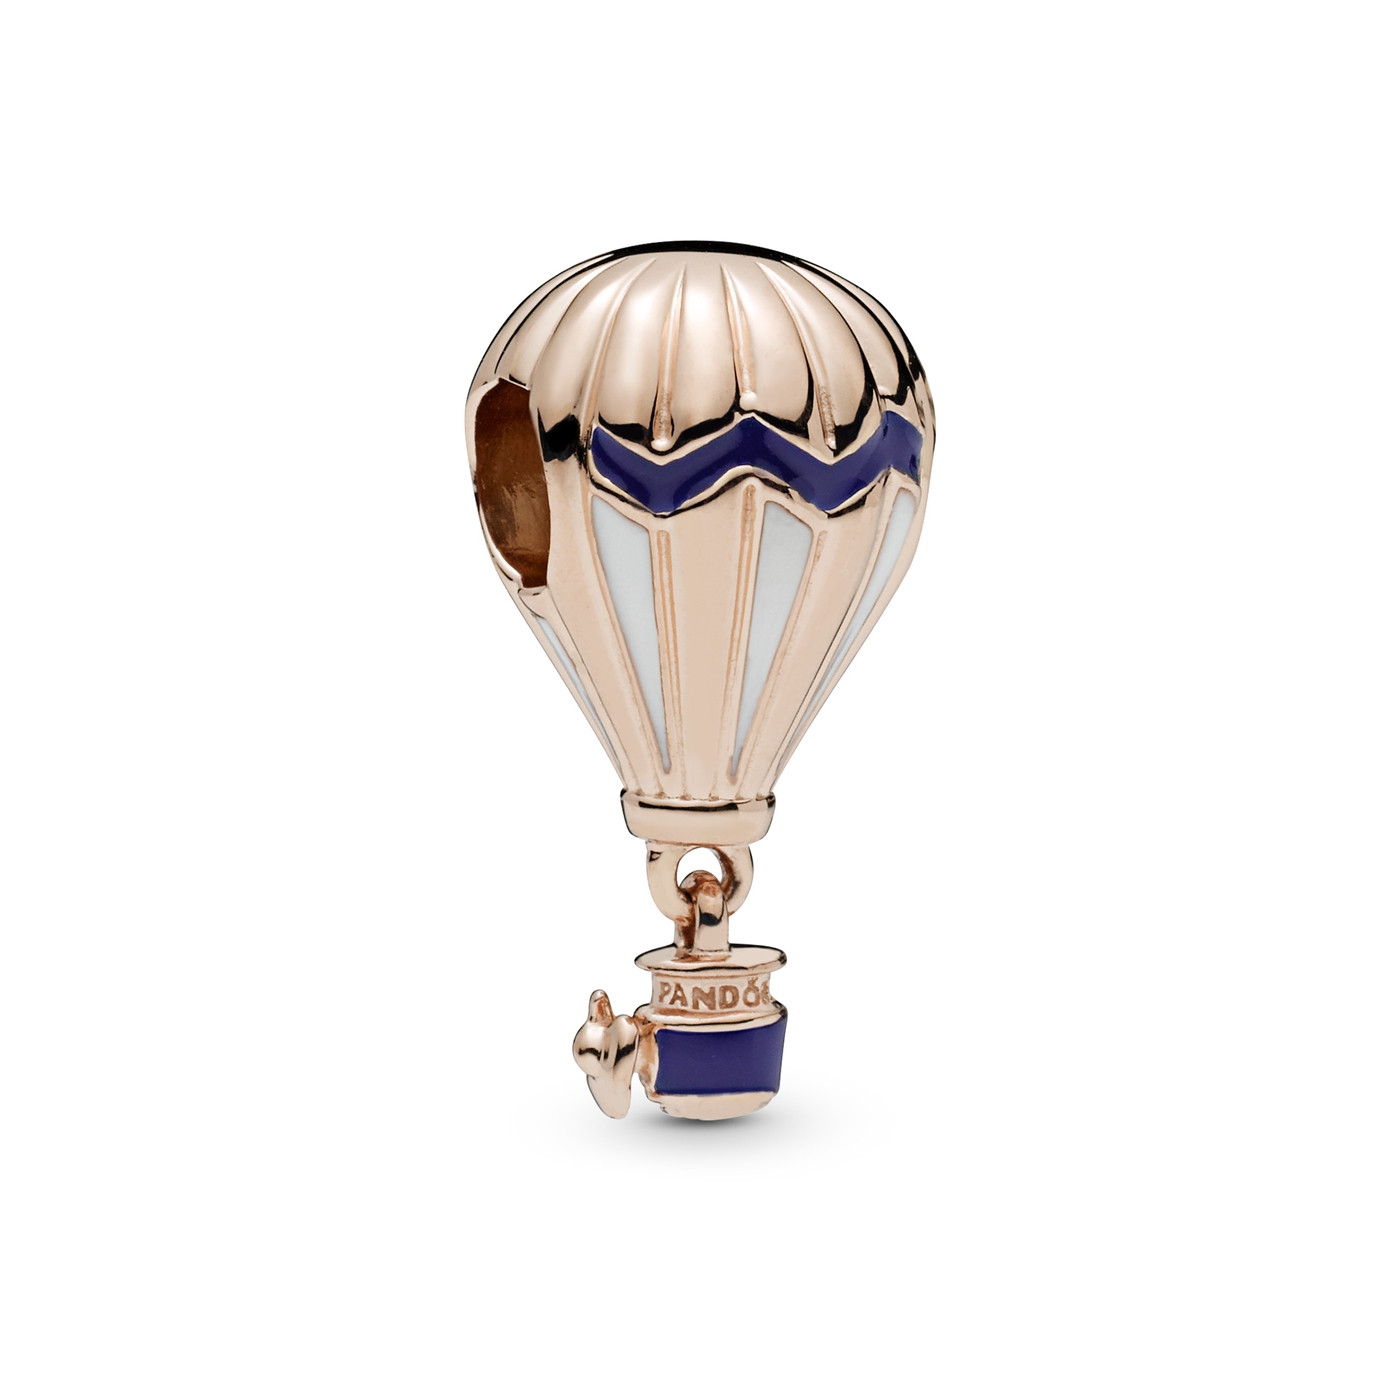 Pandora Moments 925 Sterling Zilveren Roségoudkleurige Air Balloon Bedel 788055ENMX